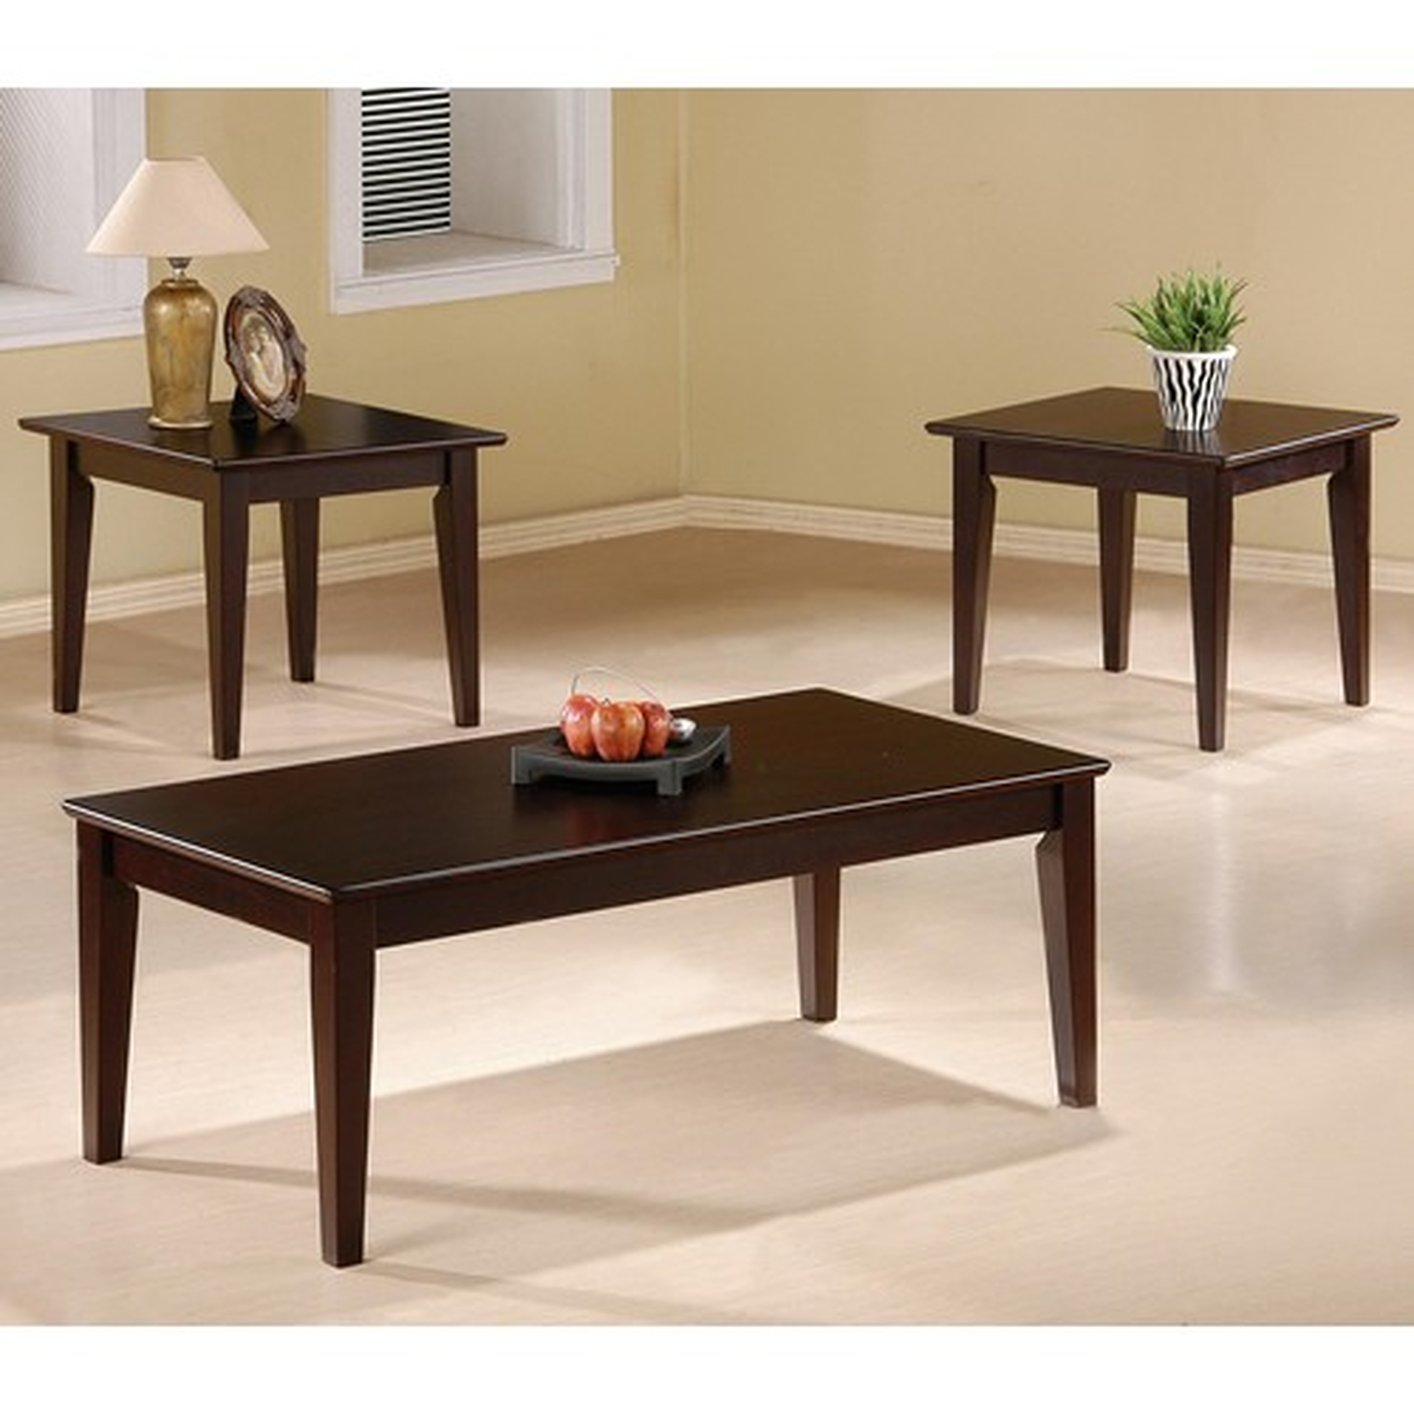 Coaster Rupard 5880 Brown Wood Coffee Table Set Steal A